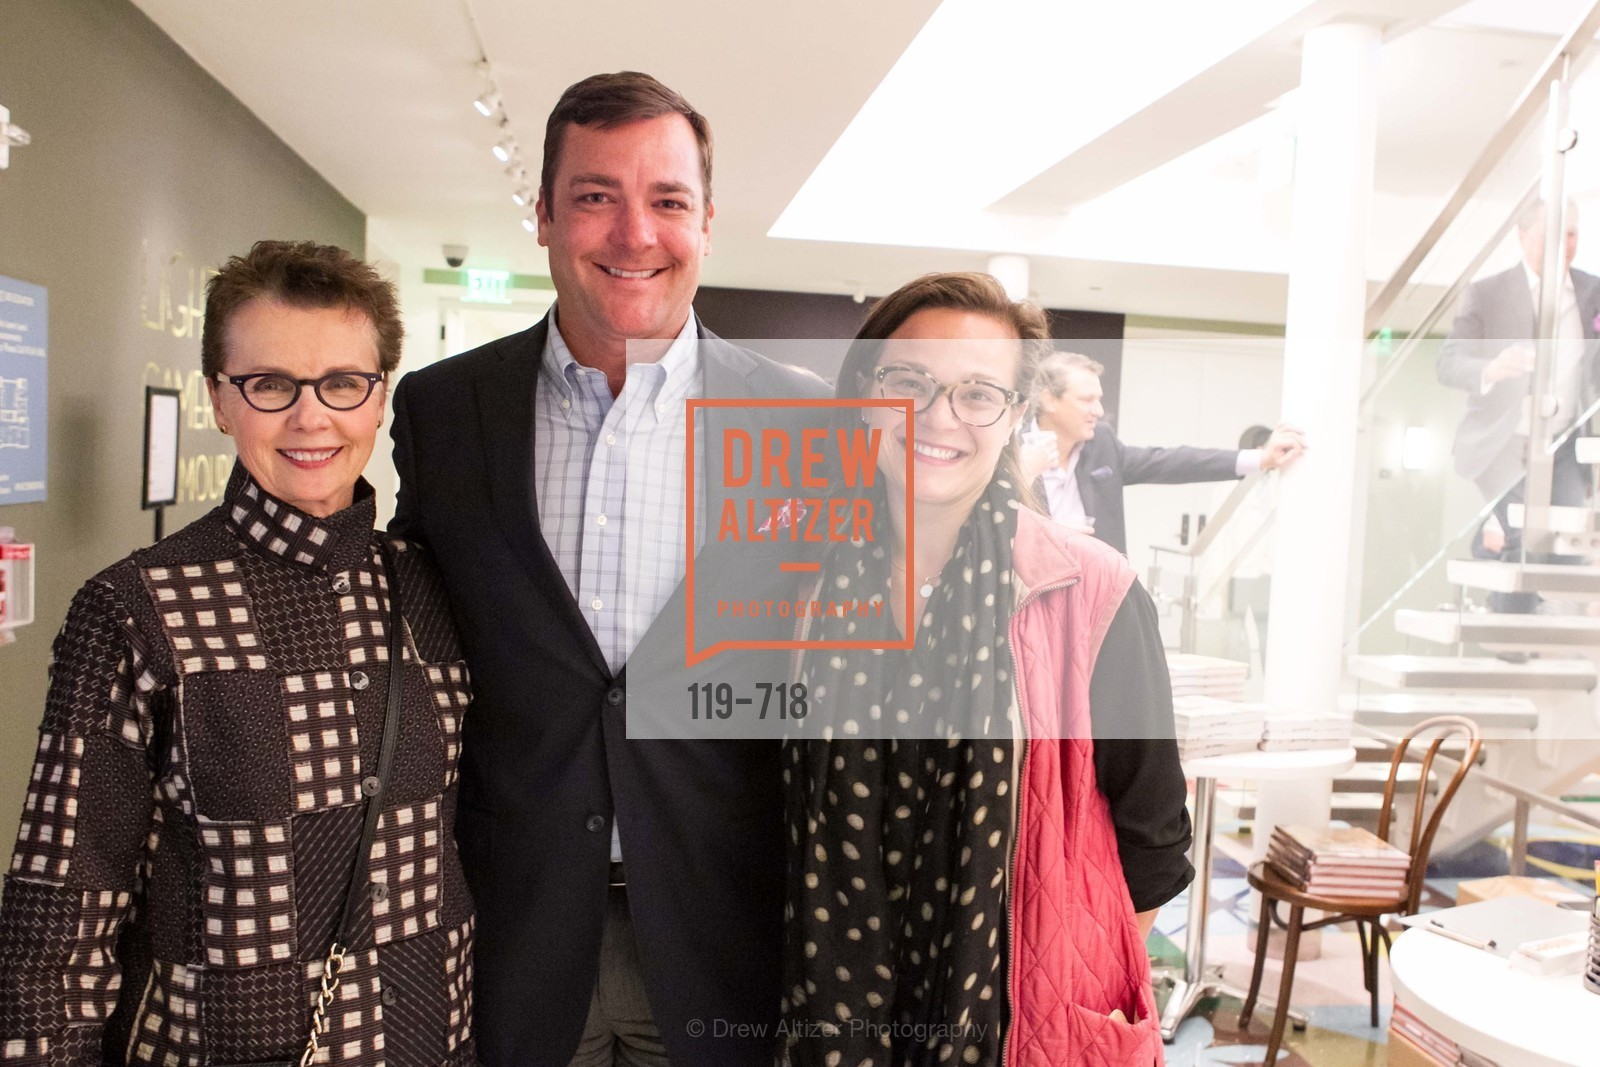 Kathleen Taylor, Jack Ryder, Josephine Arader, ICAA Hosts NICKY HASLAM'S Lecture and Book Signing, US, May 11th, 2015,Drew Altizer, Drew Altizer Photography, full-service agency, private events, San Francisco photographer, photographer california